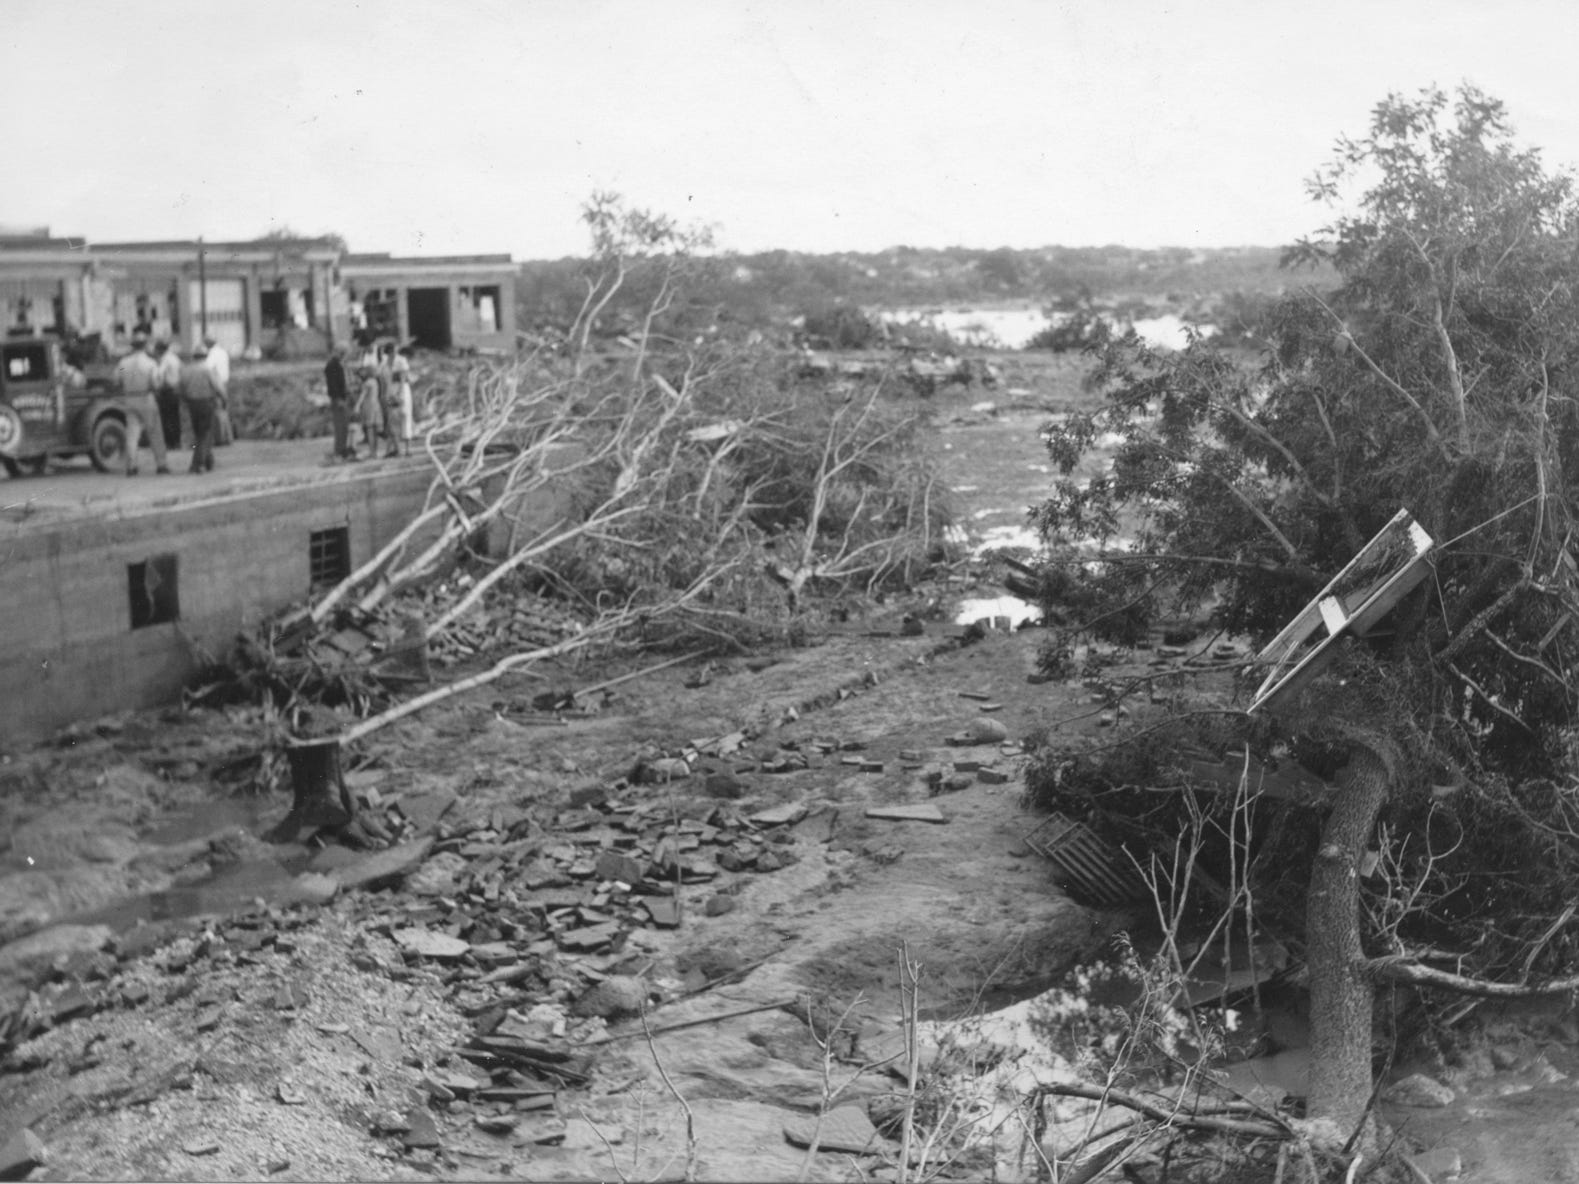 People survey damage from the San Angelo flood of 1936.